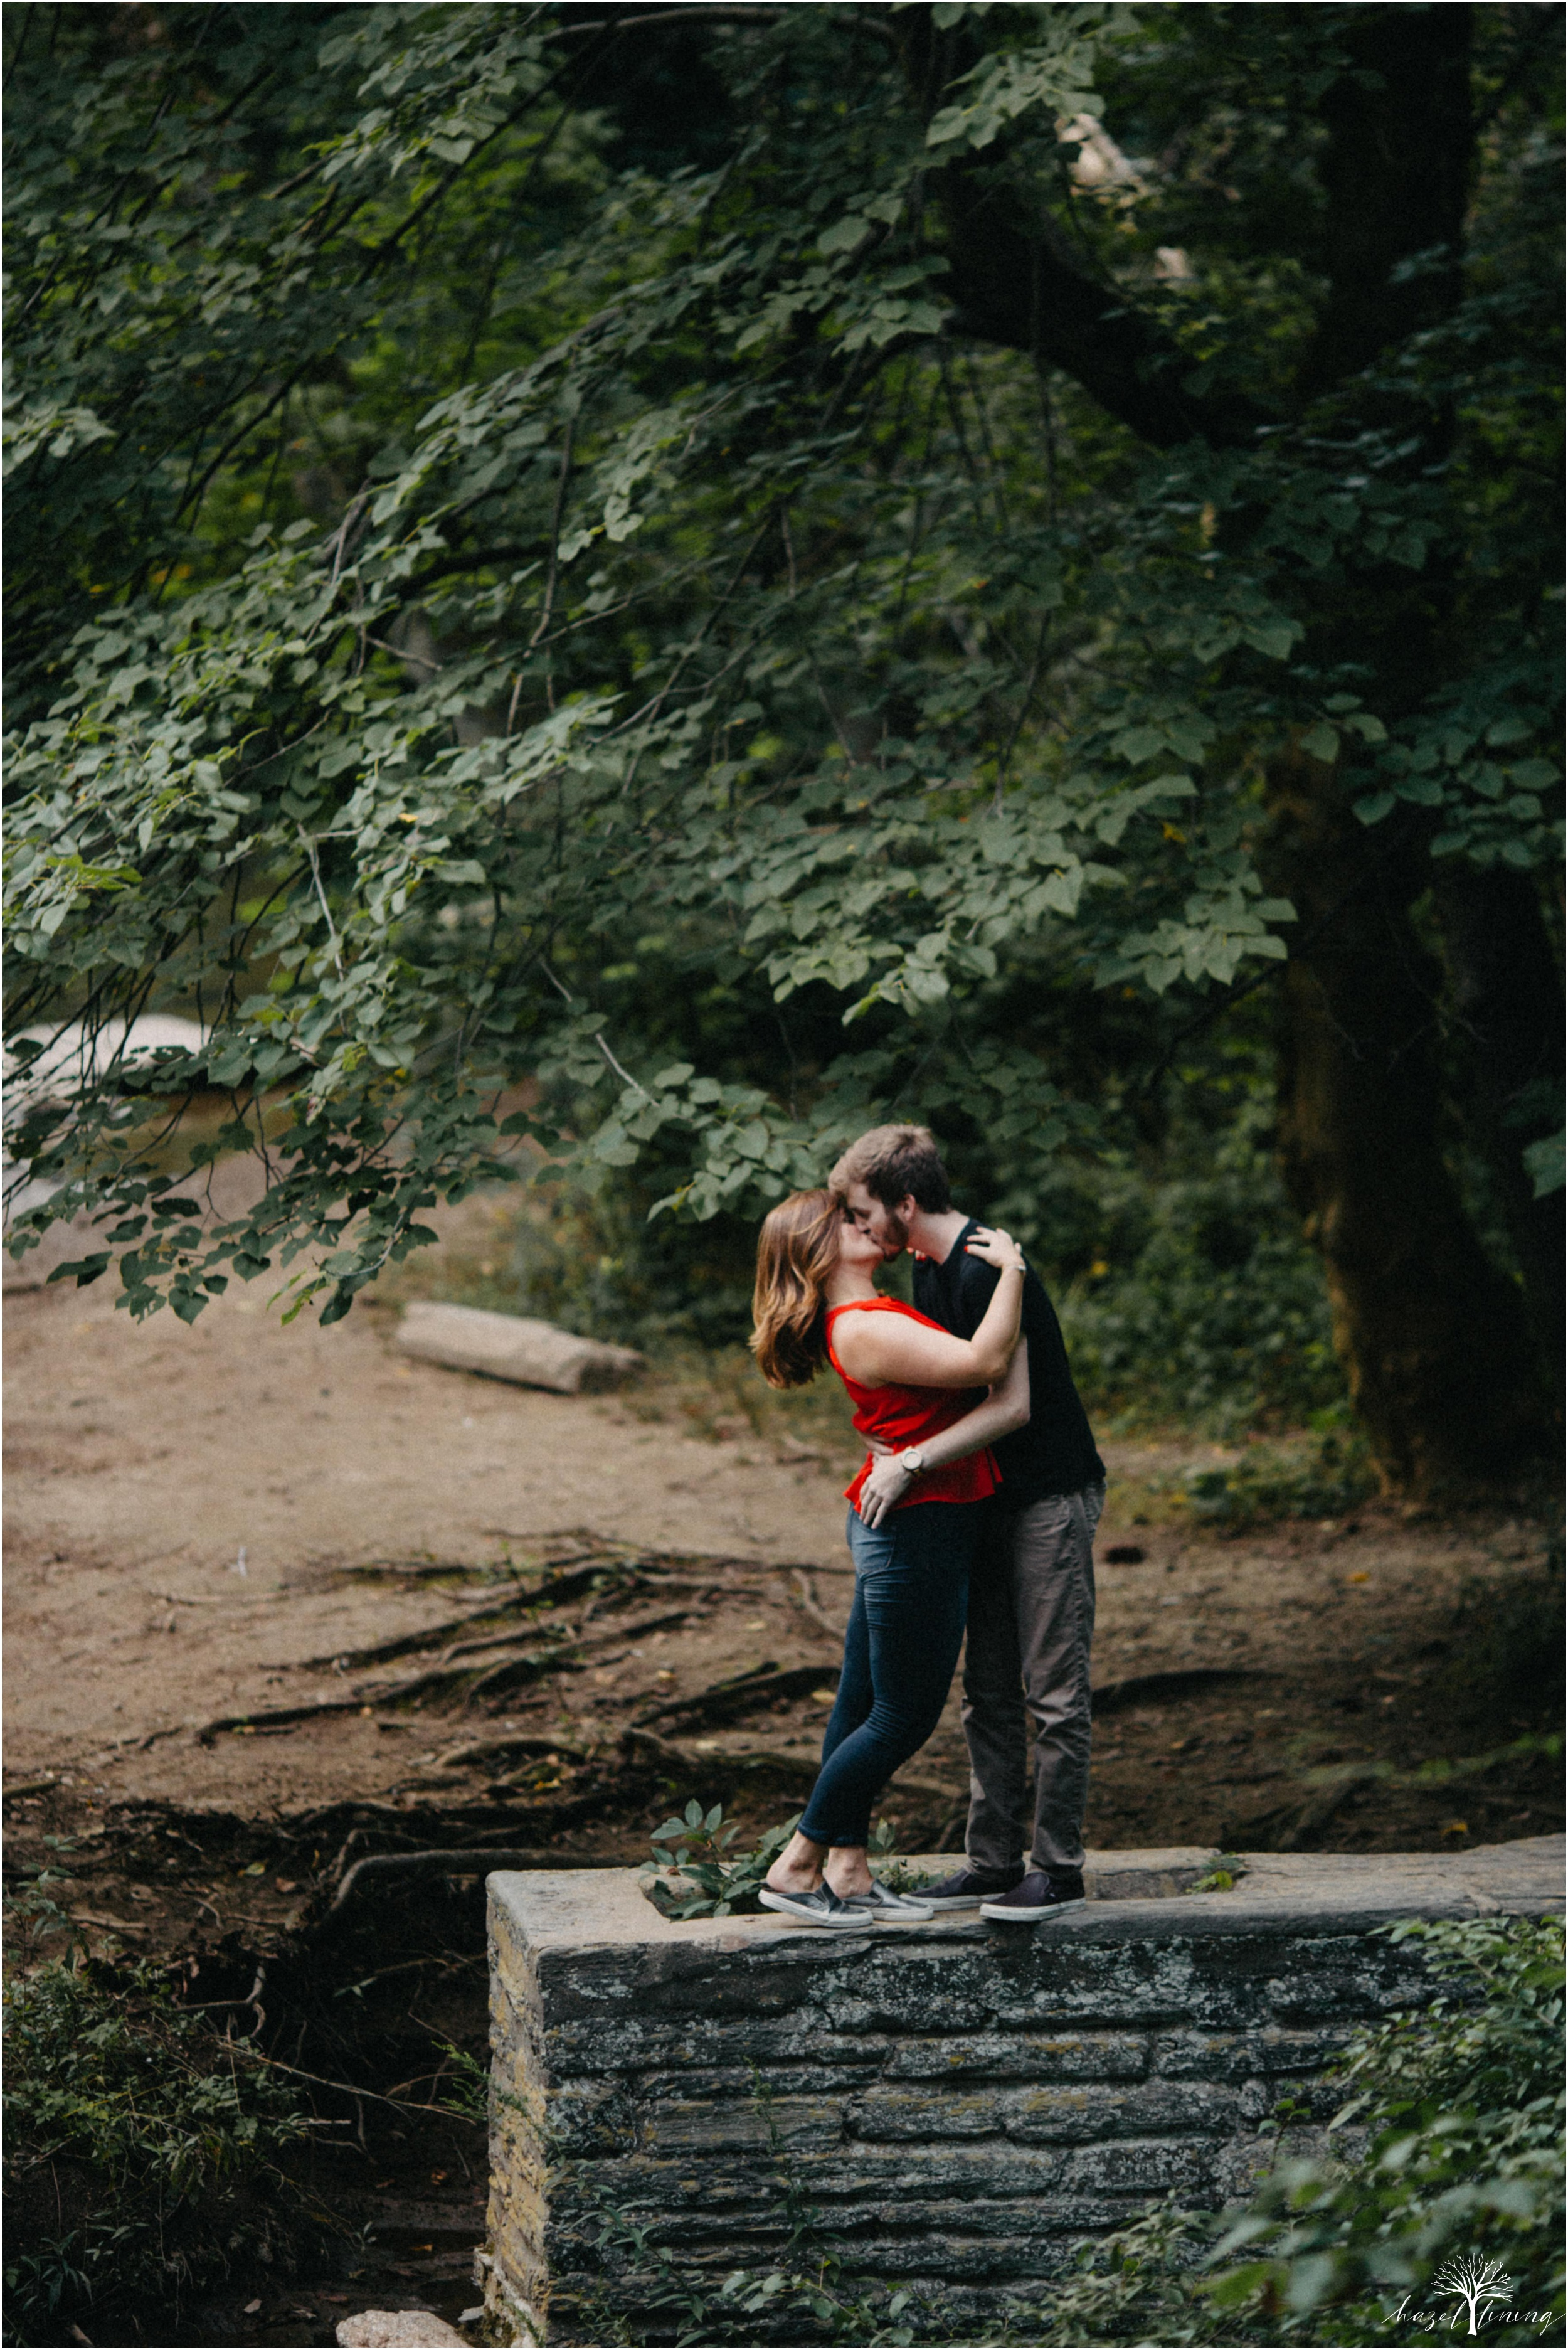 paige-kochey-chris-graham-valley-green-wissahickon-park-philadelphia-summer-engagement-session-hazel-lining-photography-destination-elopement-wedding-engagement-photography_0050.jpg